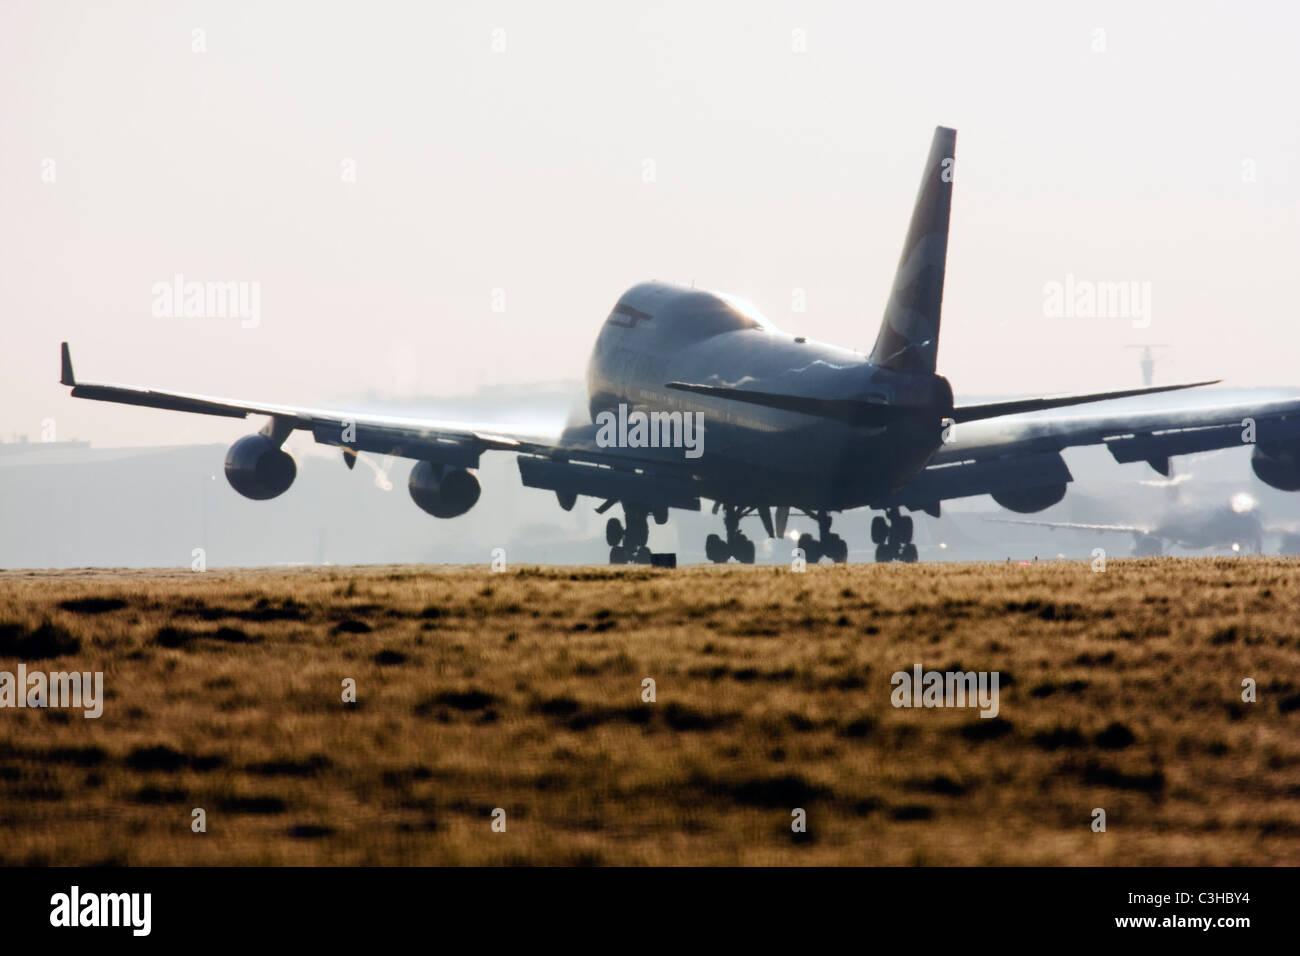 British Airways Boeing 747 landing at London Heathrow with condensation trails forming over the wings. - Stock Image